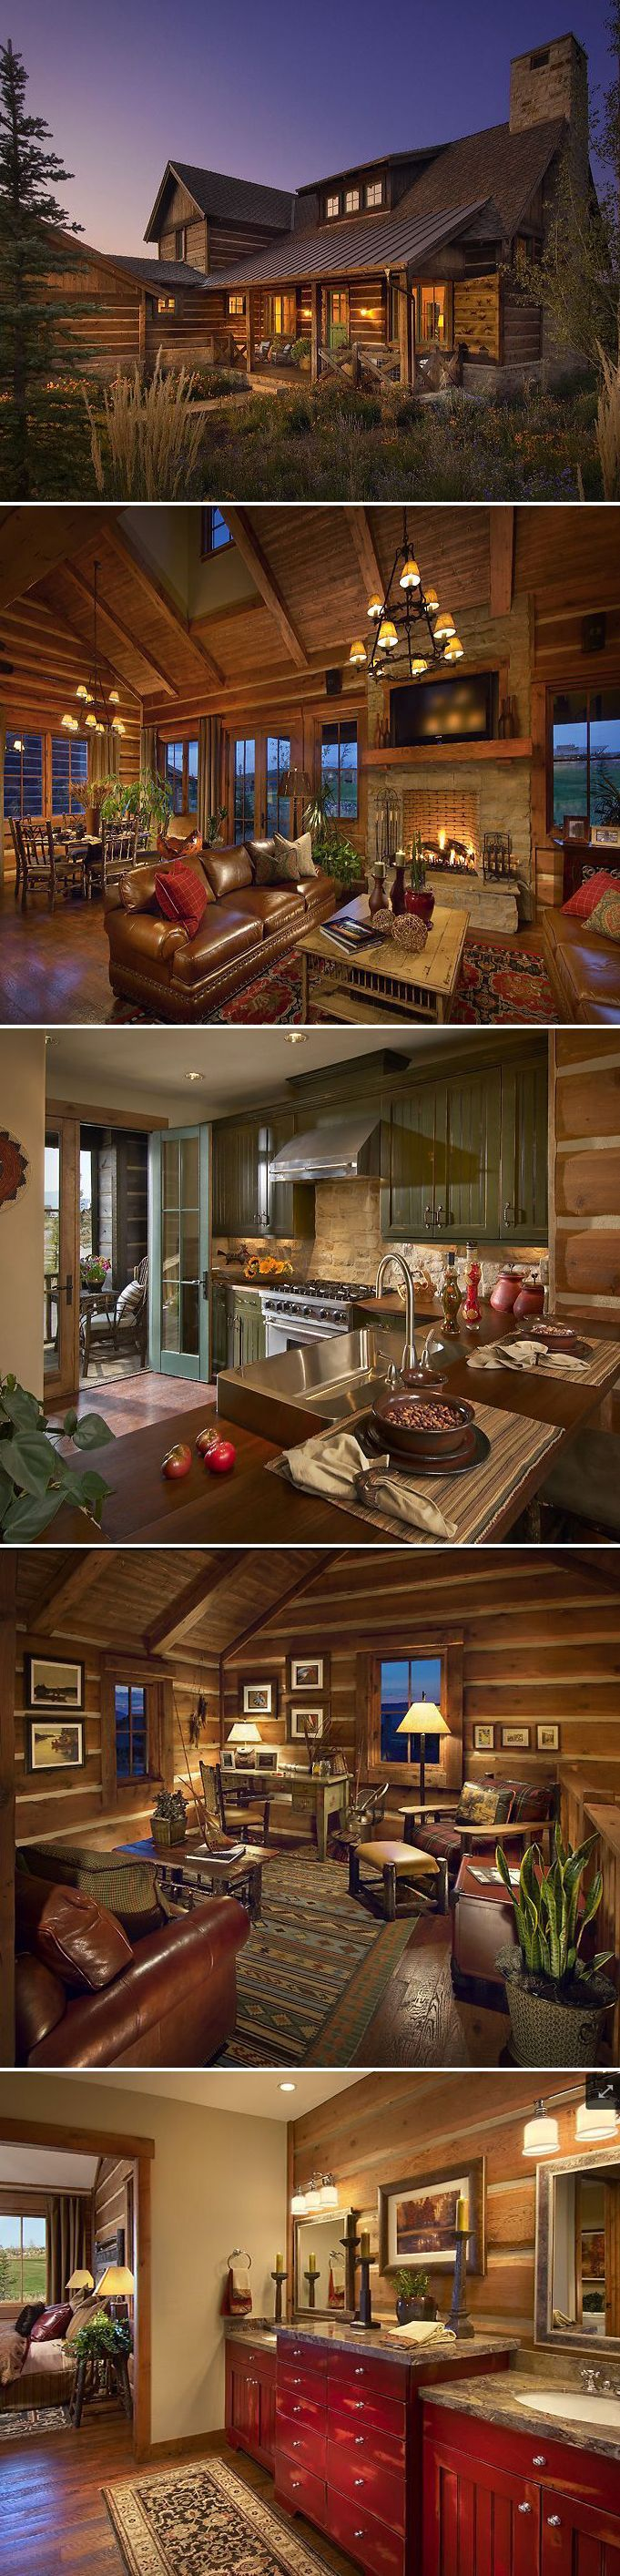 Rustic Design Concepts – Canadian Log Properties